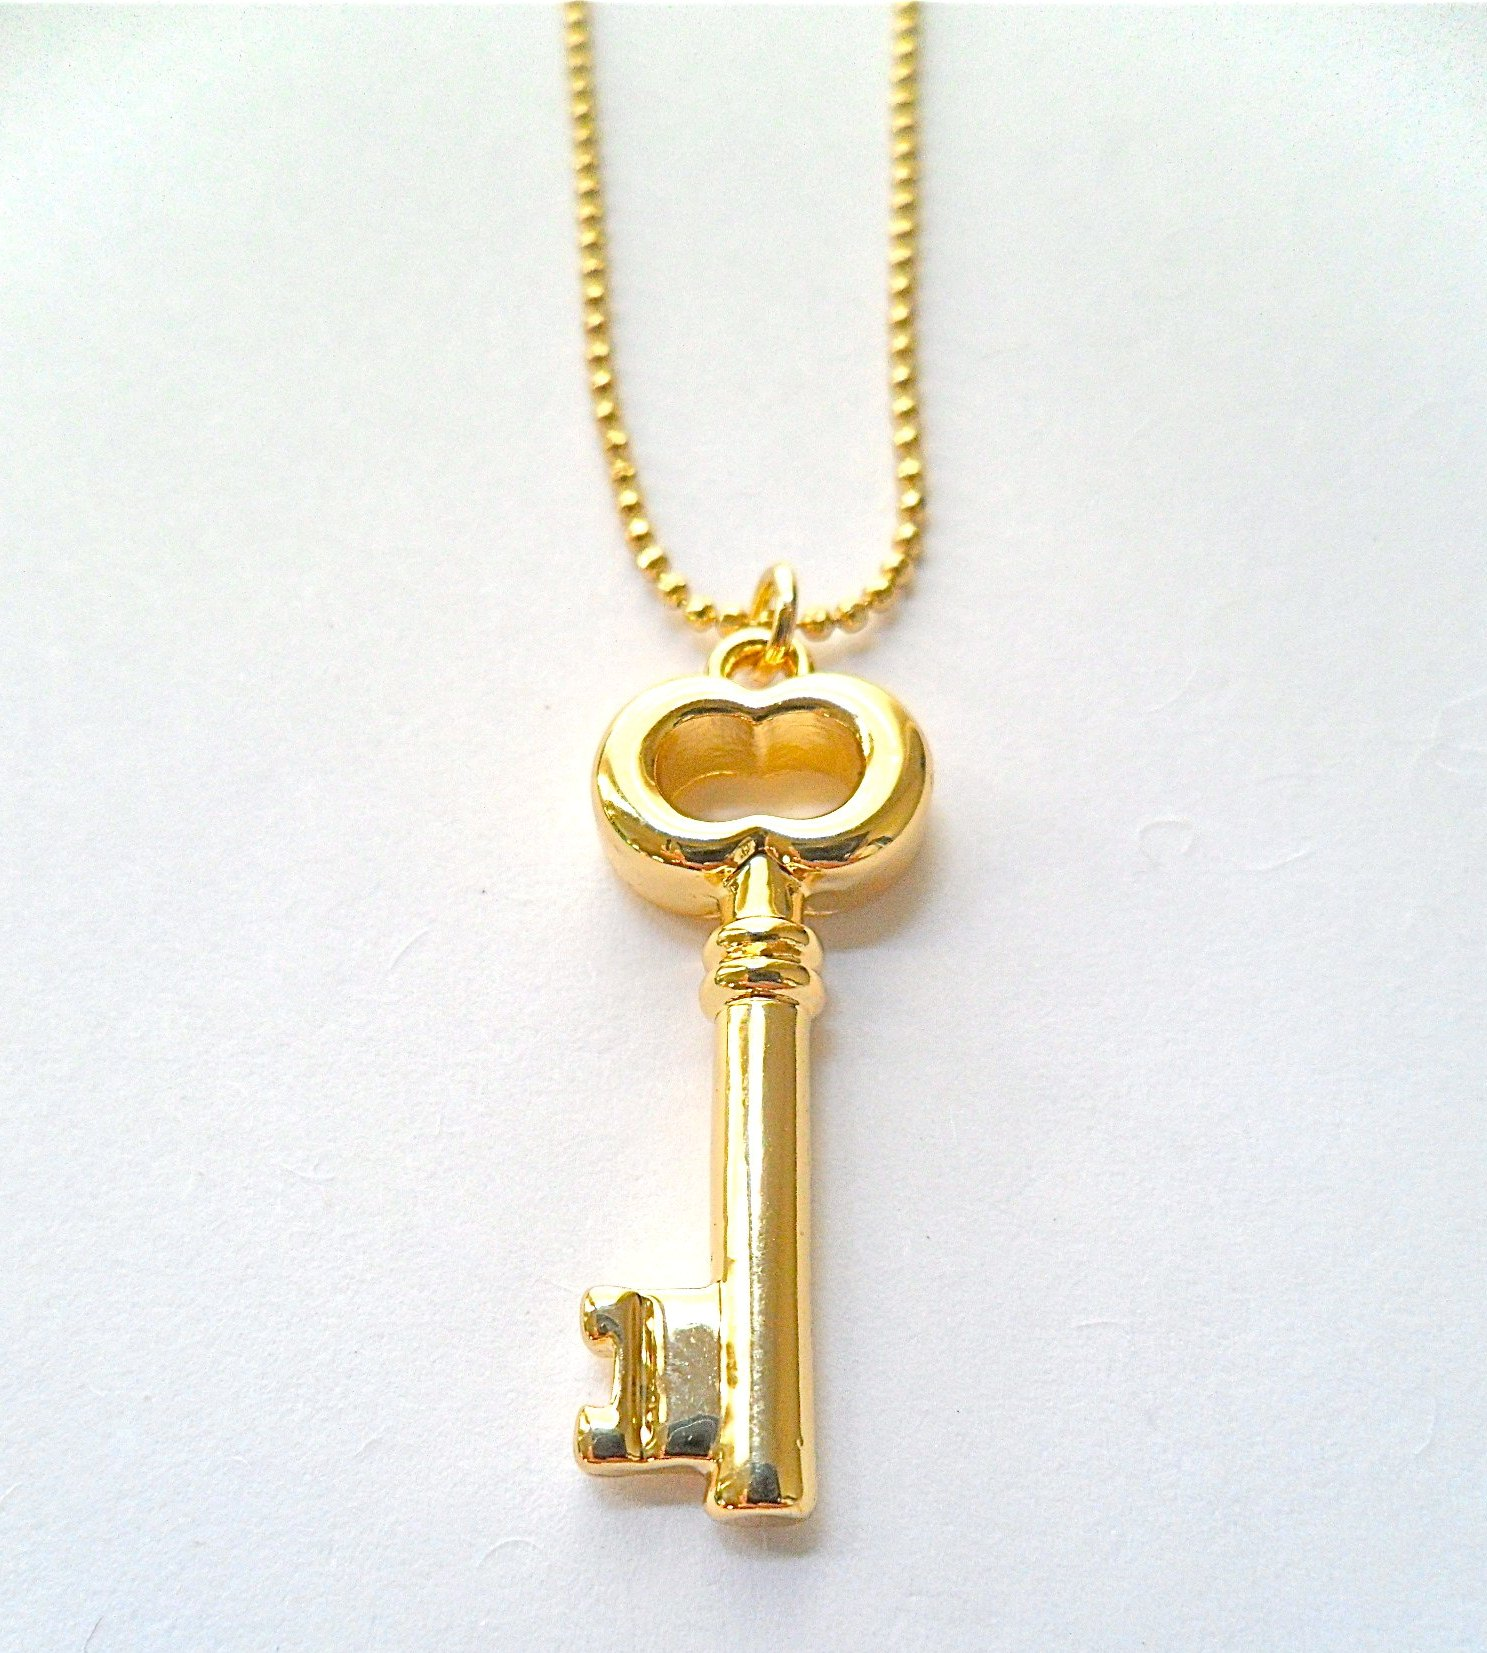 win this stunning key necklace by pomp jewelry makes the